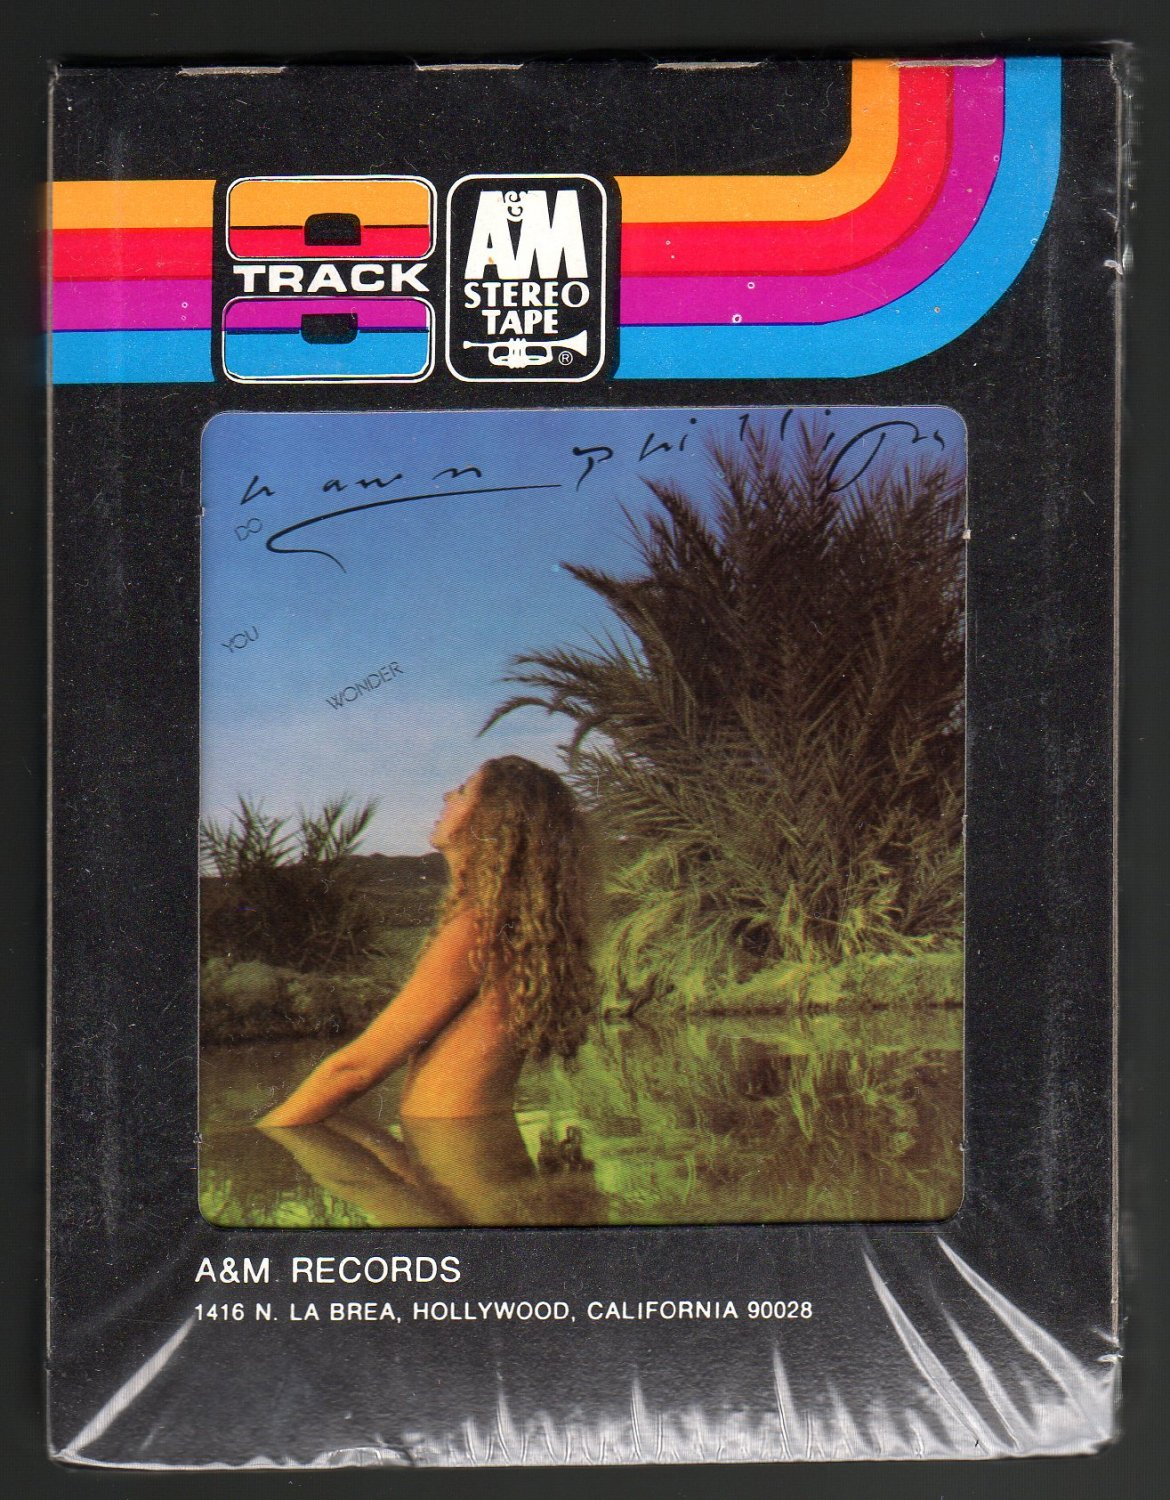 Shawn Phillips - Do You Wonder 1974 A&M Sealed A23 8-TRACK TAPE